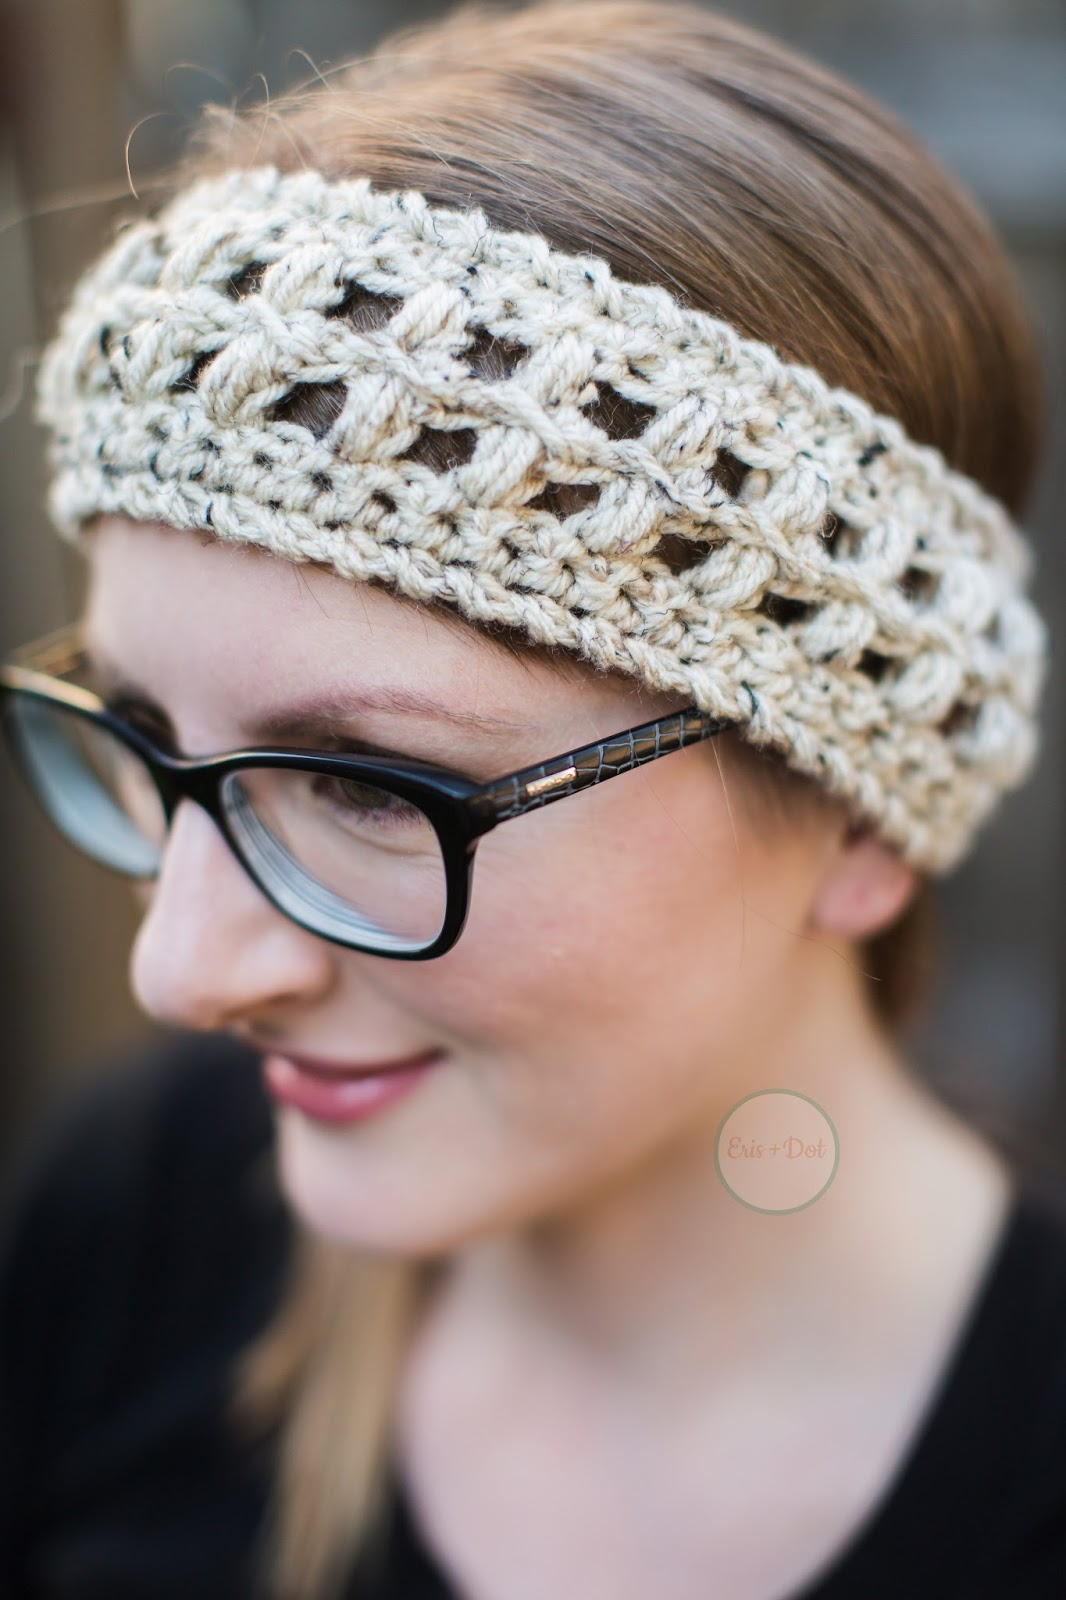 Parker Crochet Ear Warmer, Crochet Earwarmer, Crochet Headband, Winter Headband, Headwrap, Ponytail Headband, Women's, Teen, Gifts for Her